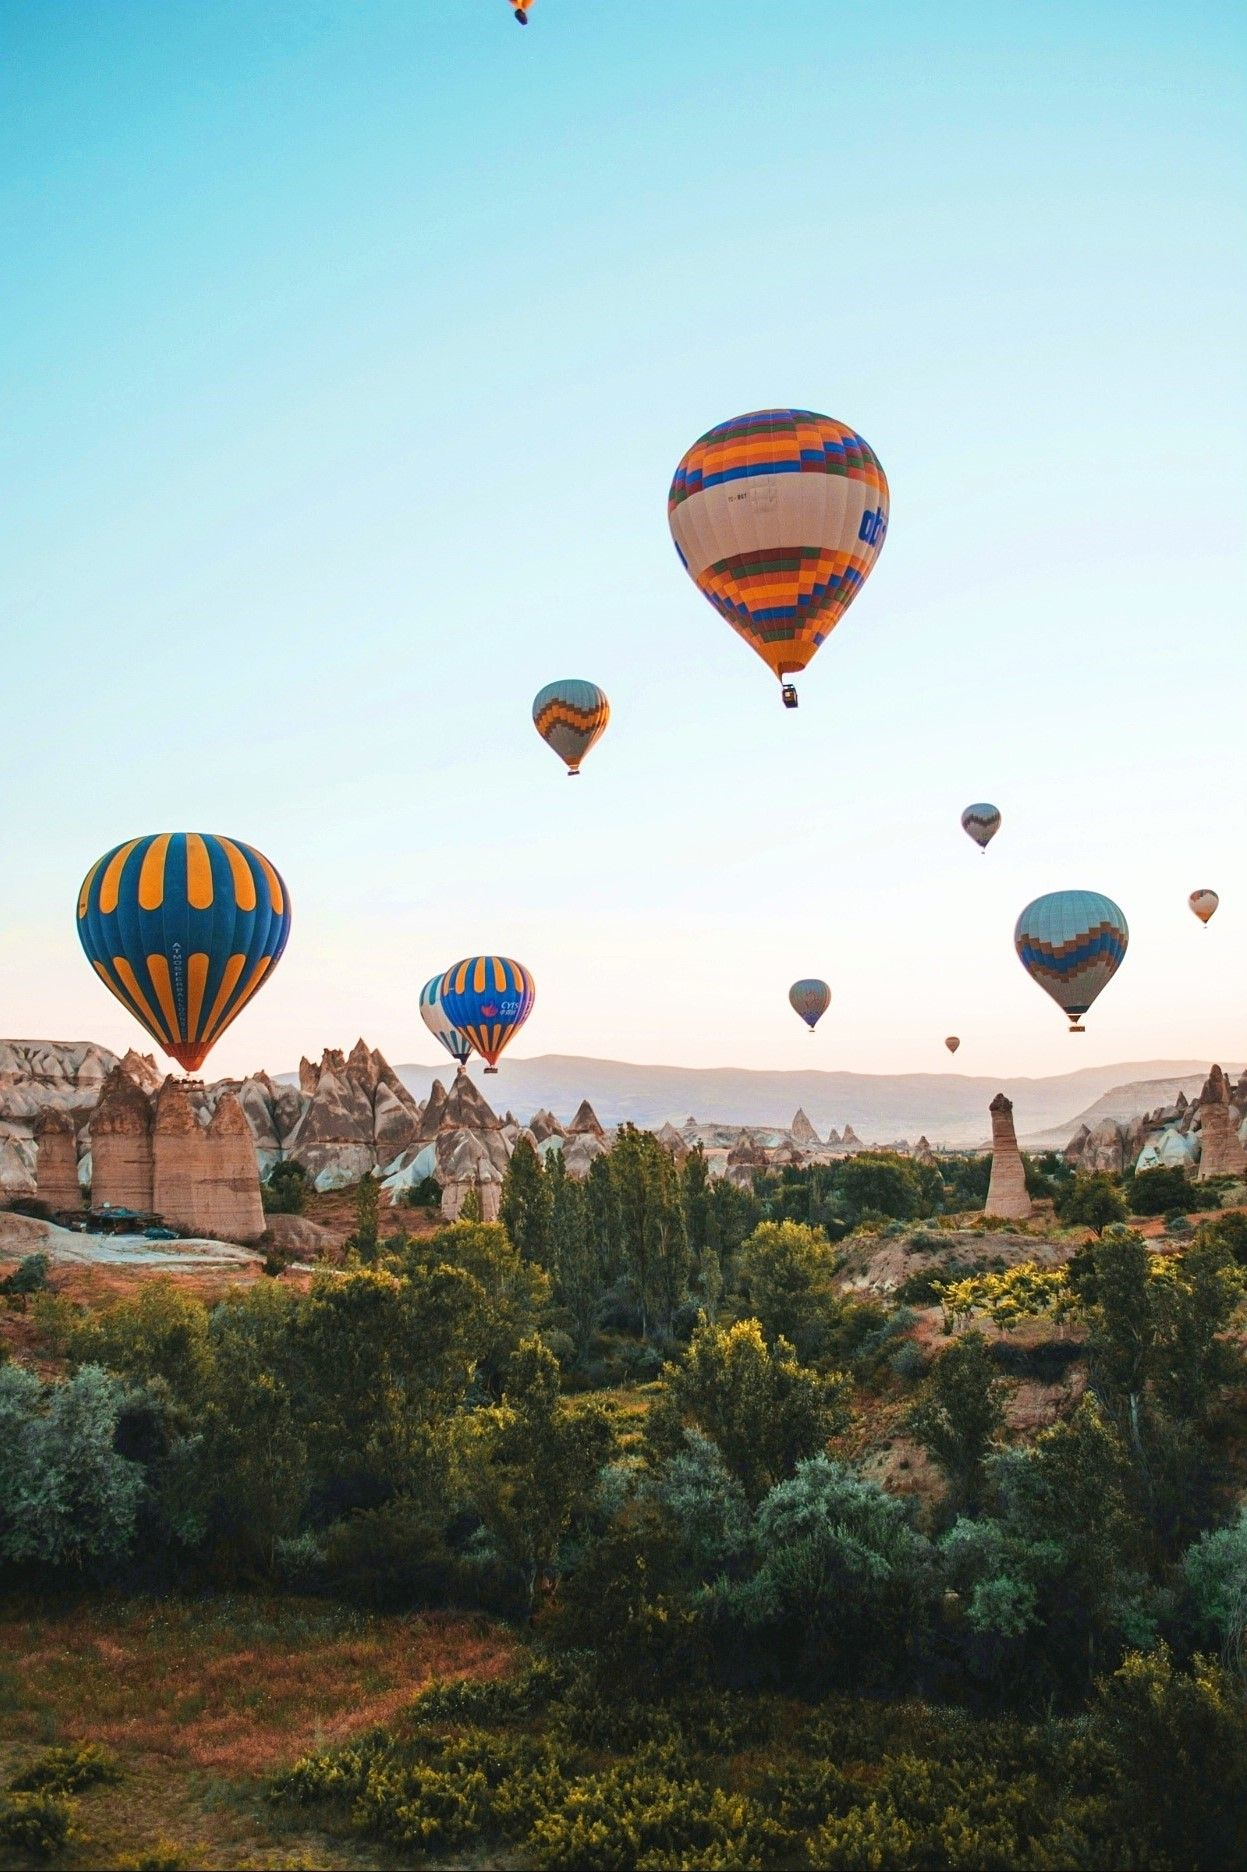 Hotair balloons flying over Cappadocia Turkey. Photograph